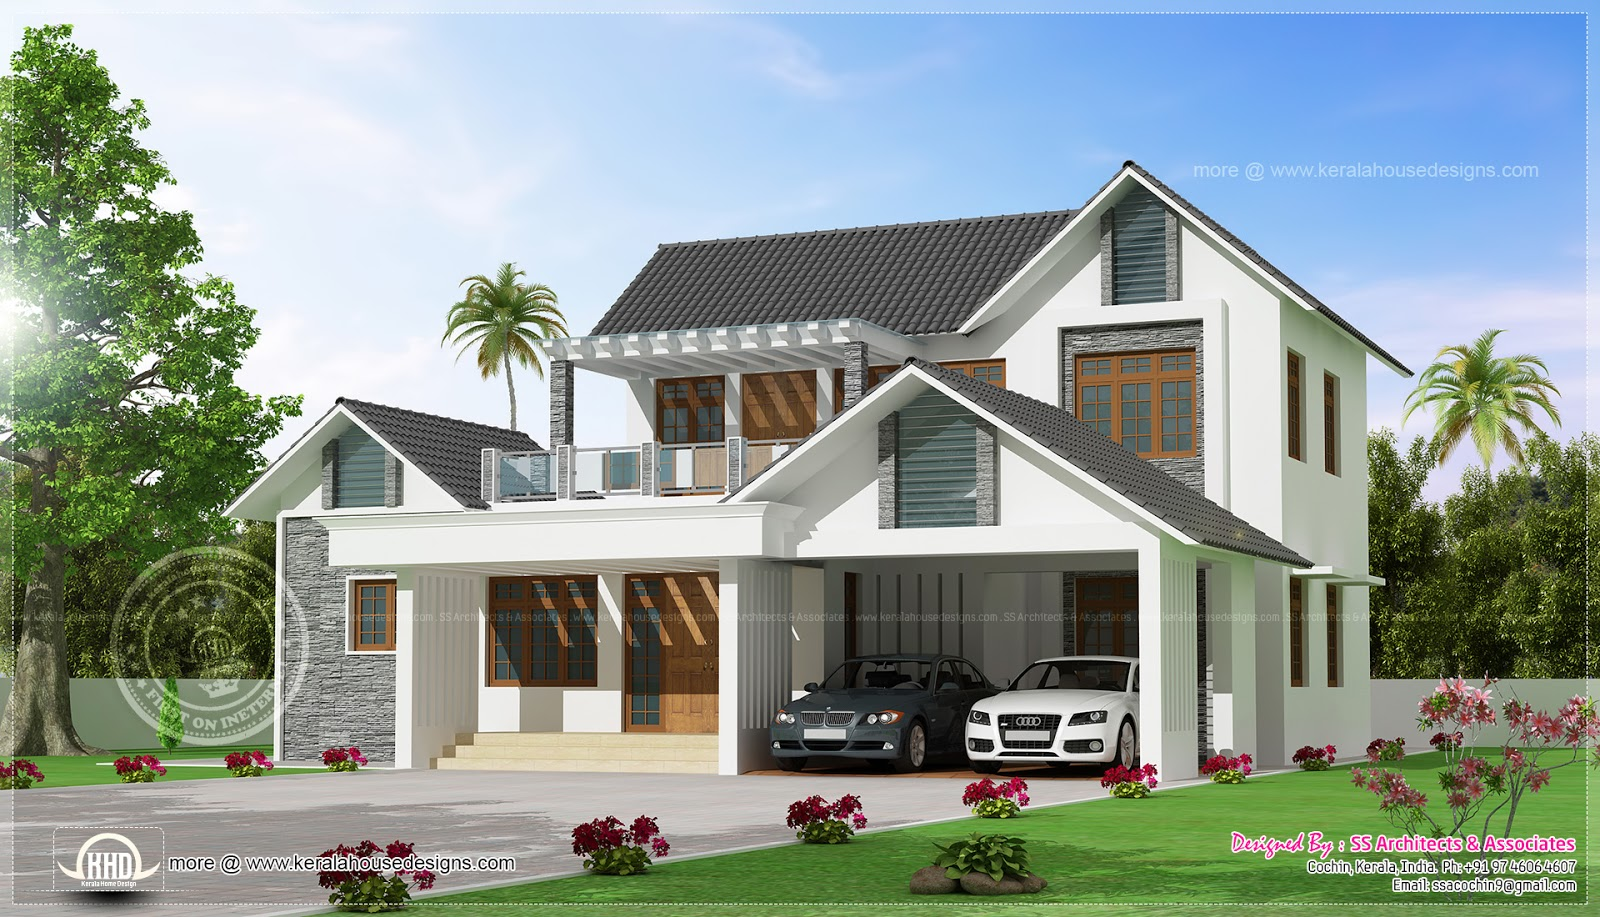 Awesome modern villa exterior elevation kerala home for Villa design plan india